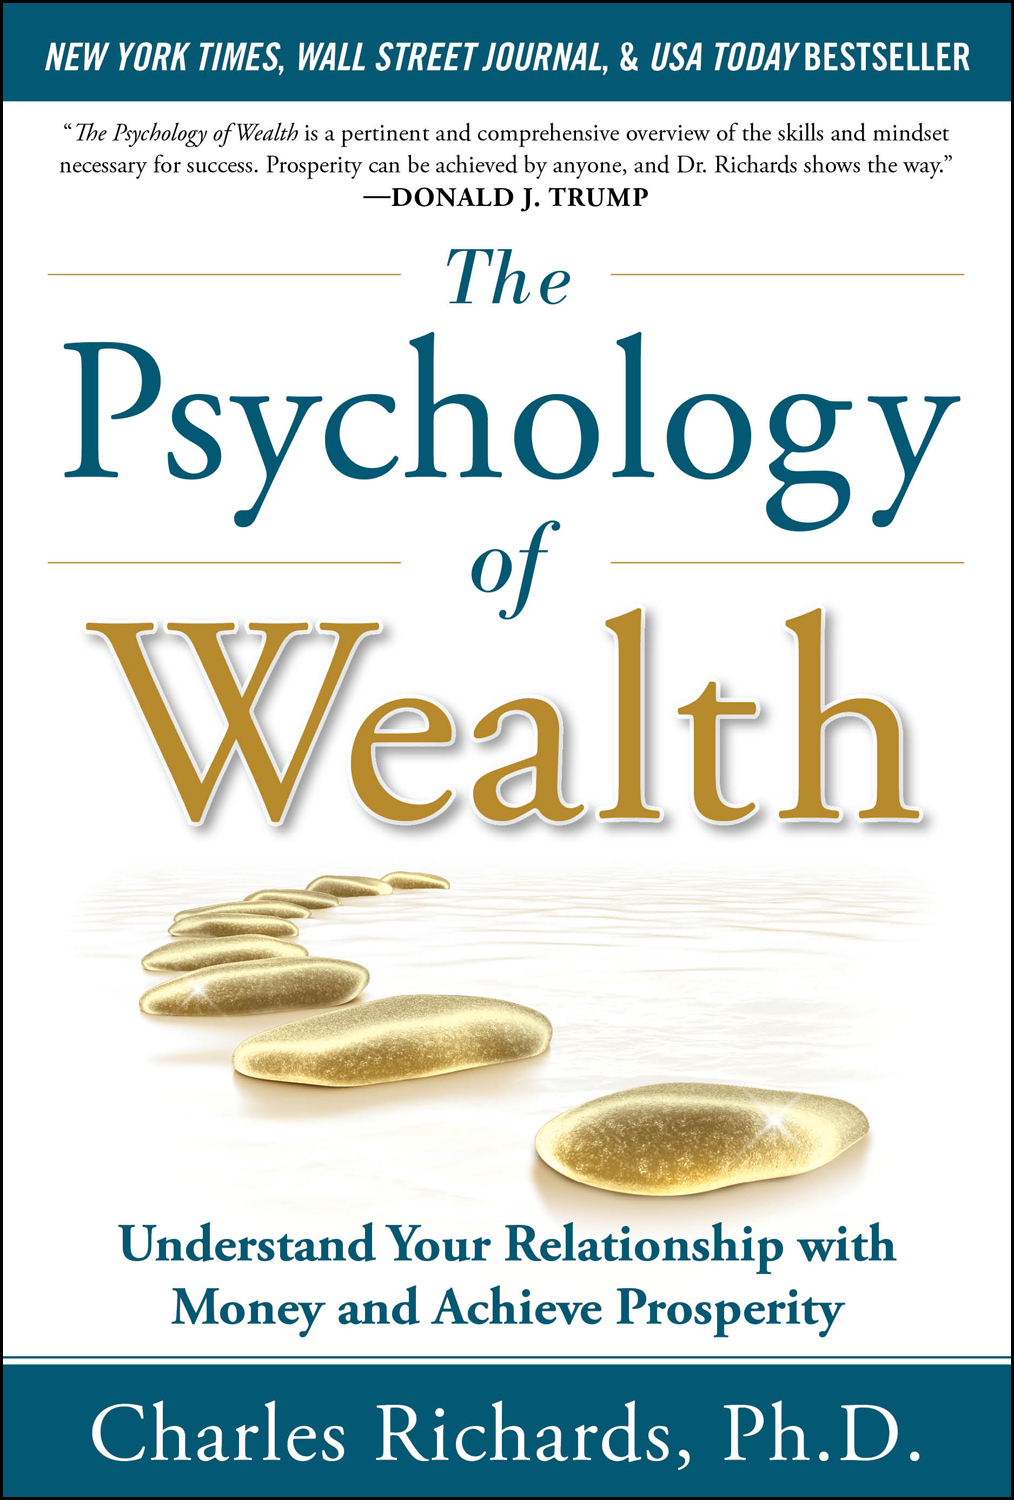 Download Ebook The Psychology of Wealth: Understand Your Relationship with Money and Achieve Prosperity by Charles Richards Pdf